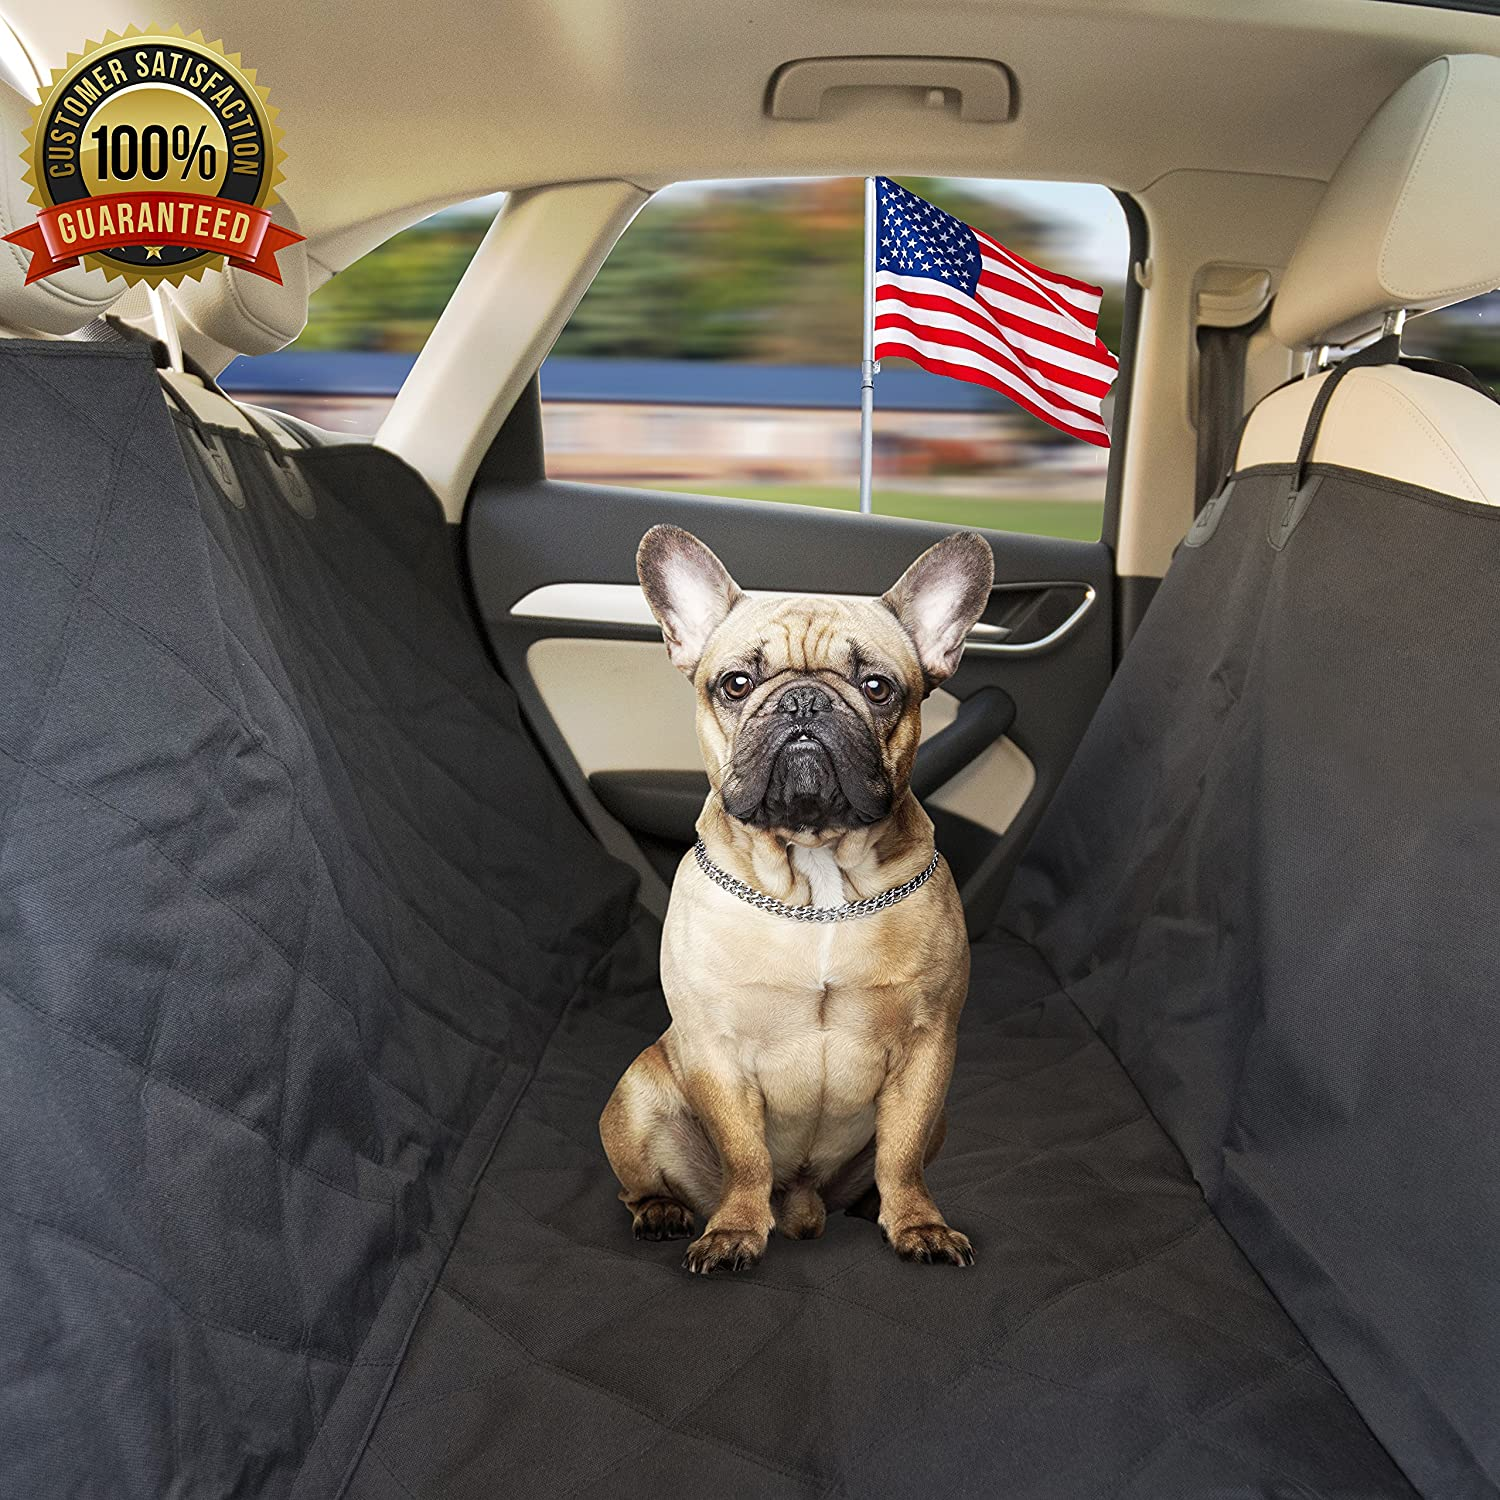 PetABite Reliable Pet Car Seat Cover  Free from Dog Hair on The Back Seat  Waterproof Luxury Hammock Predector w Flaps & Storage Bag. Vehicle & SUV Puppy Comfort Accessory.